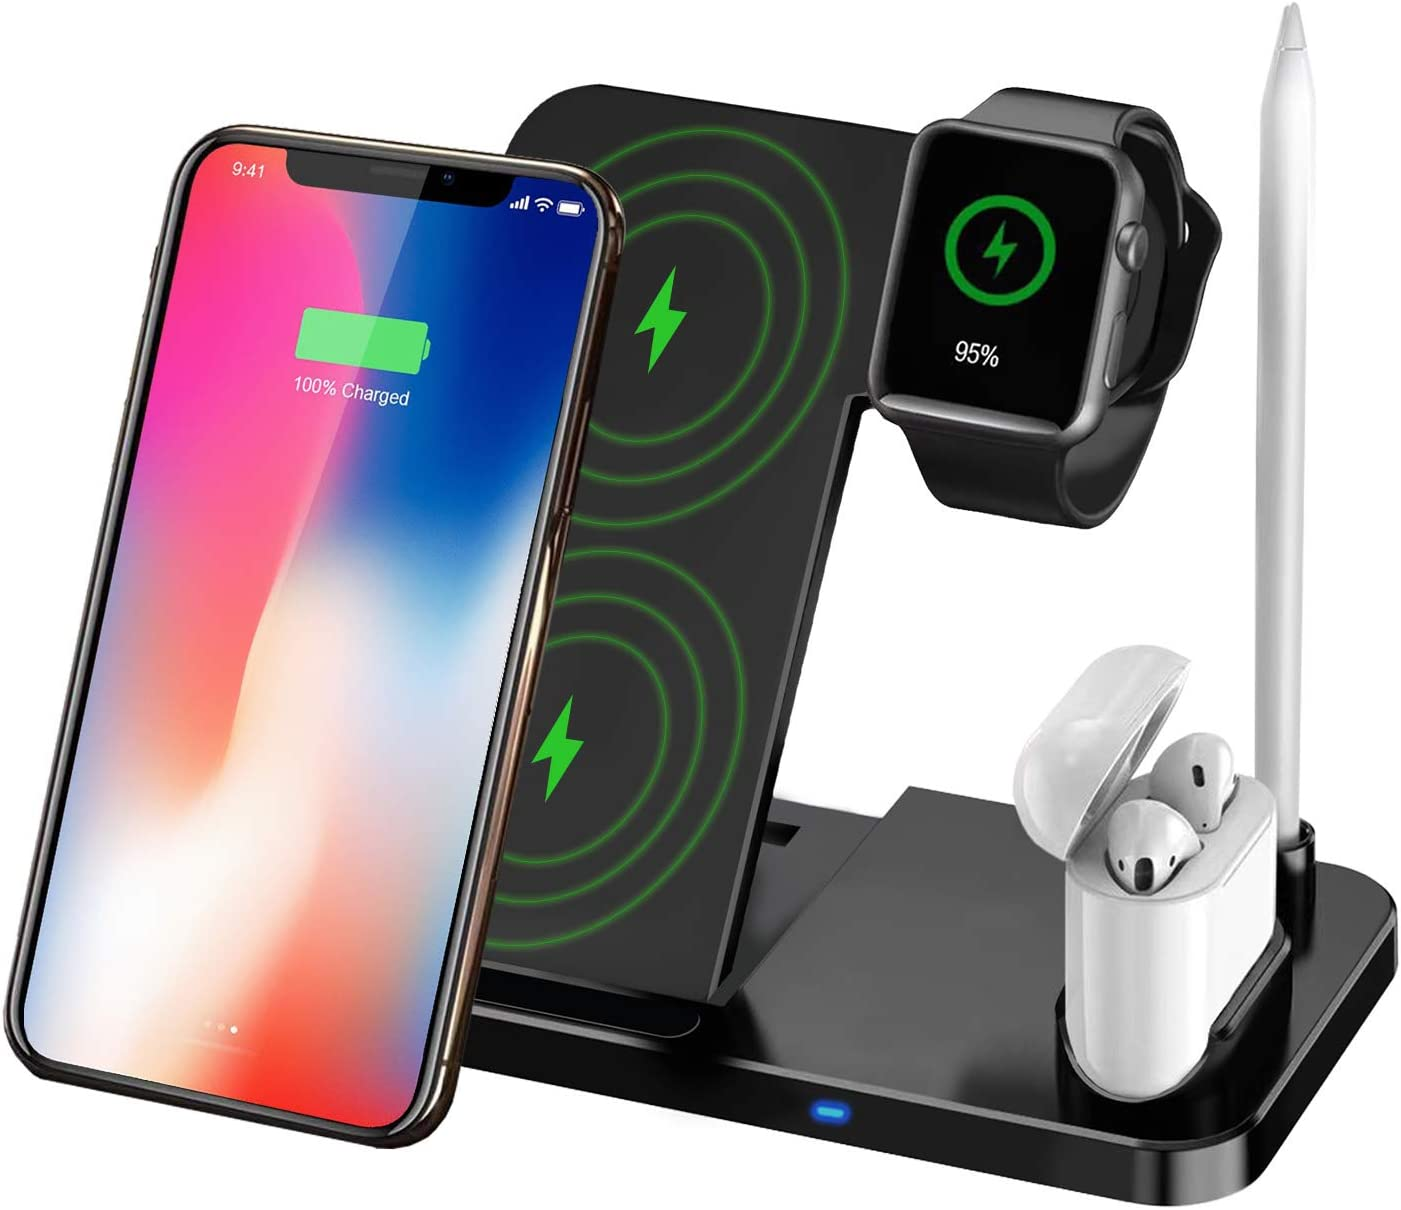 TaoHorse 4 in 1 Wireless Charger for Iphone 12 Charger, Wireless Charging Station for AirPods/AirPods Pro Wireless Charging Pad with iWatch Stand Pencil Holder for iPhone 11/11 pro/11 Pro/Watch Series